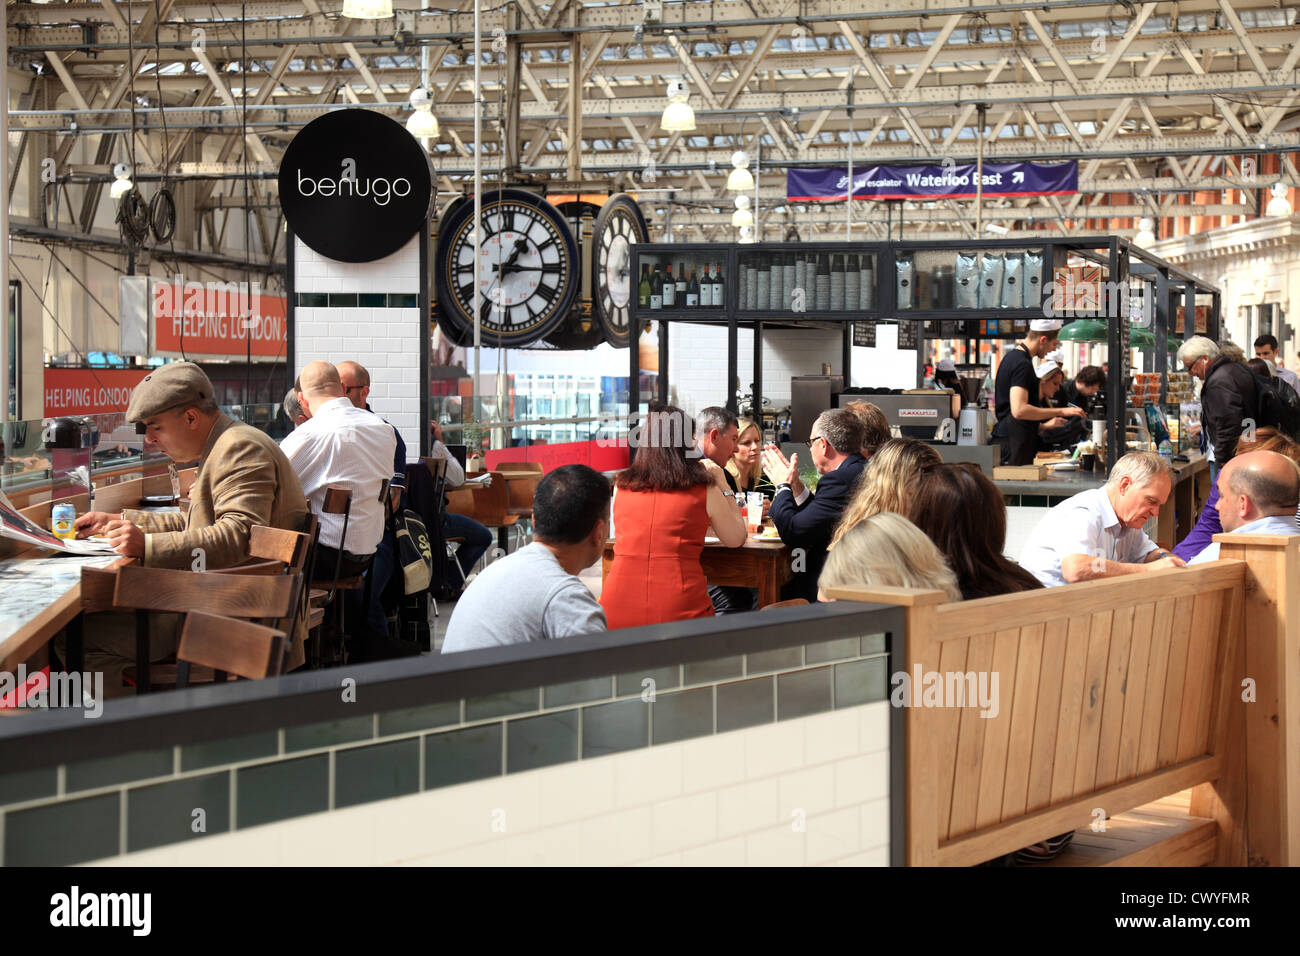 Waterloo Station Cafe Snack Bar in London UK. - Stock Image